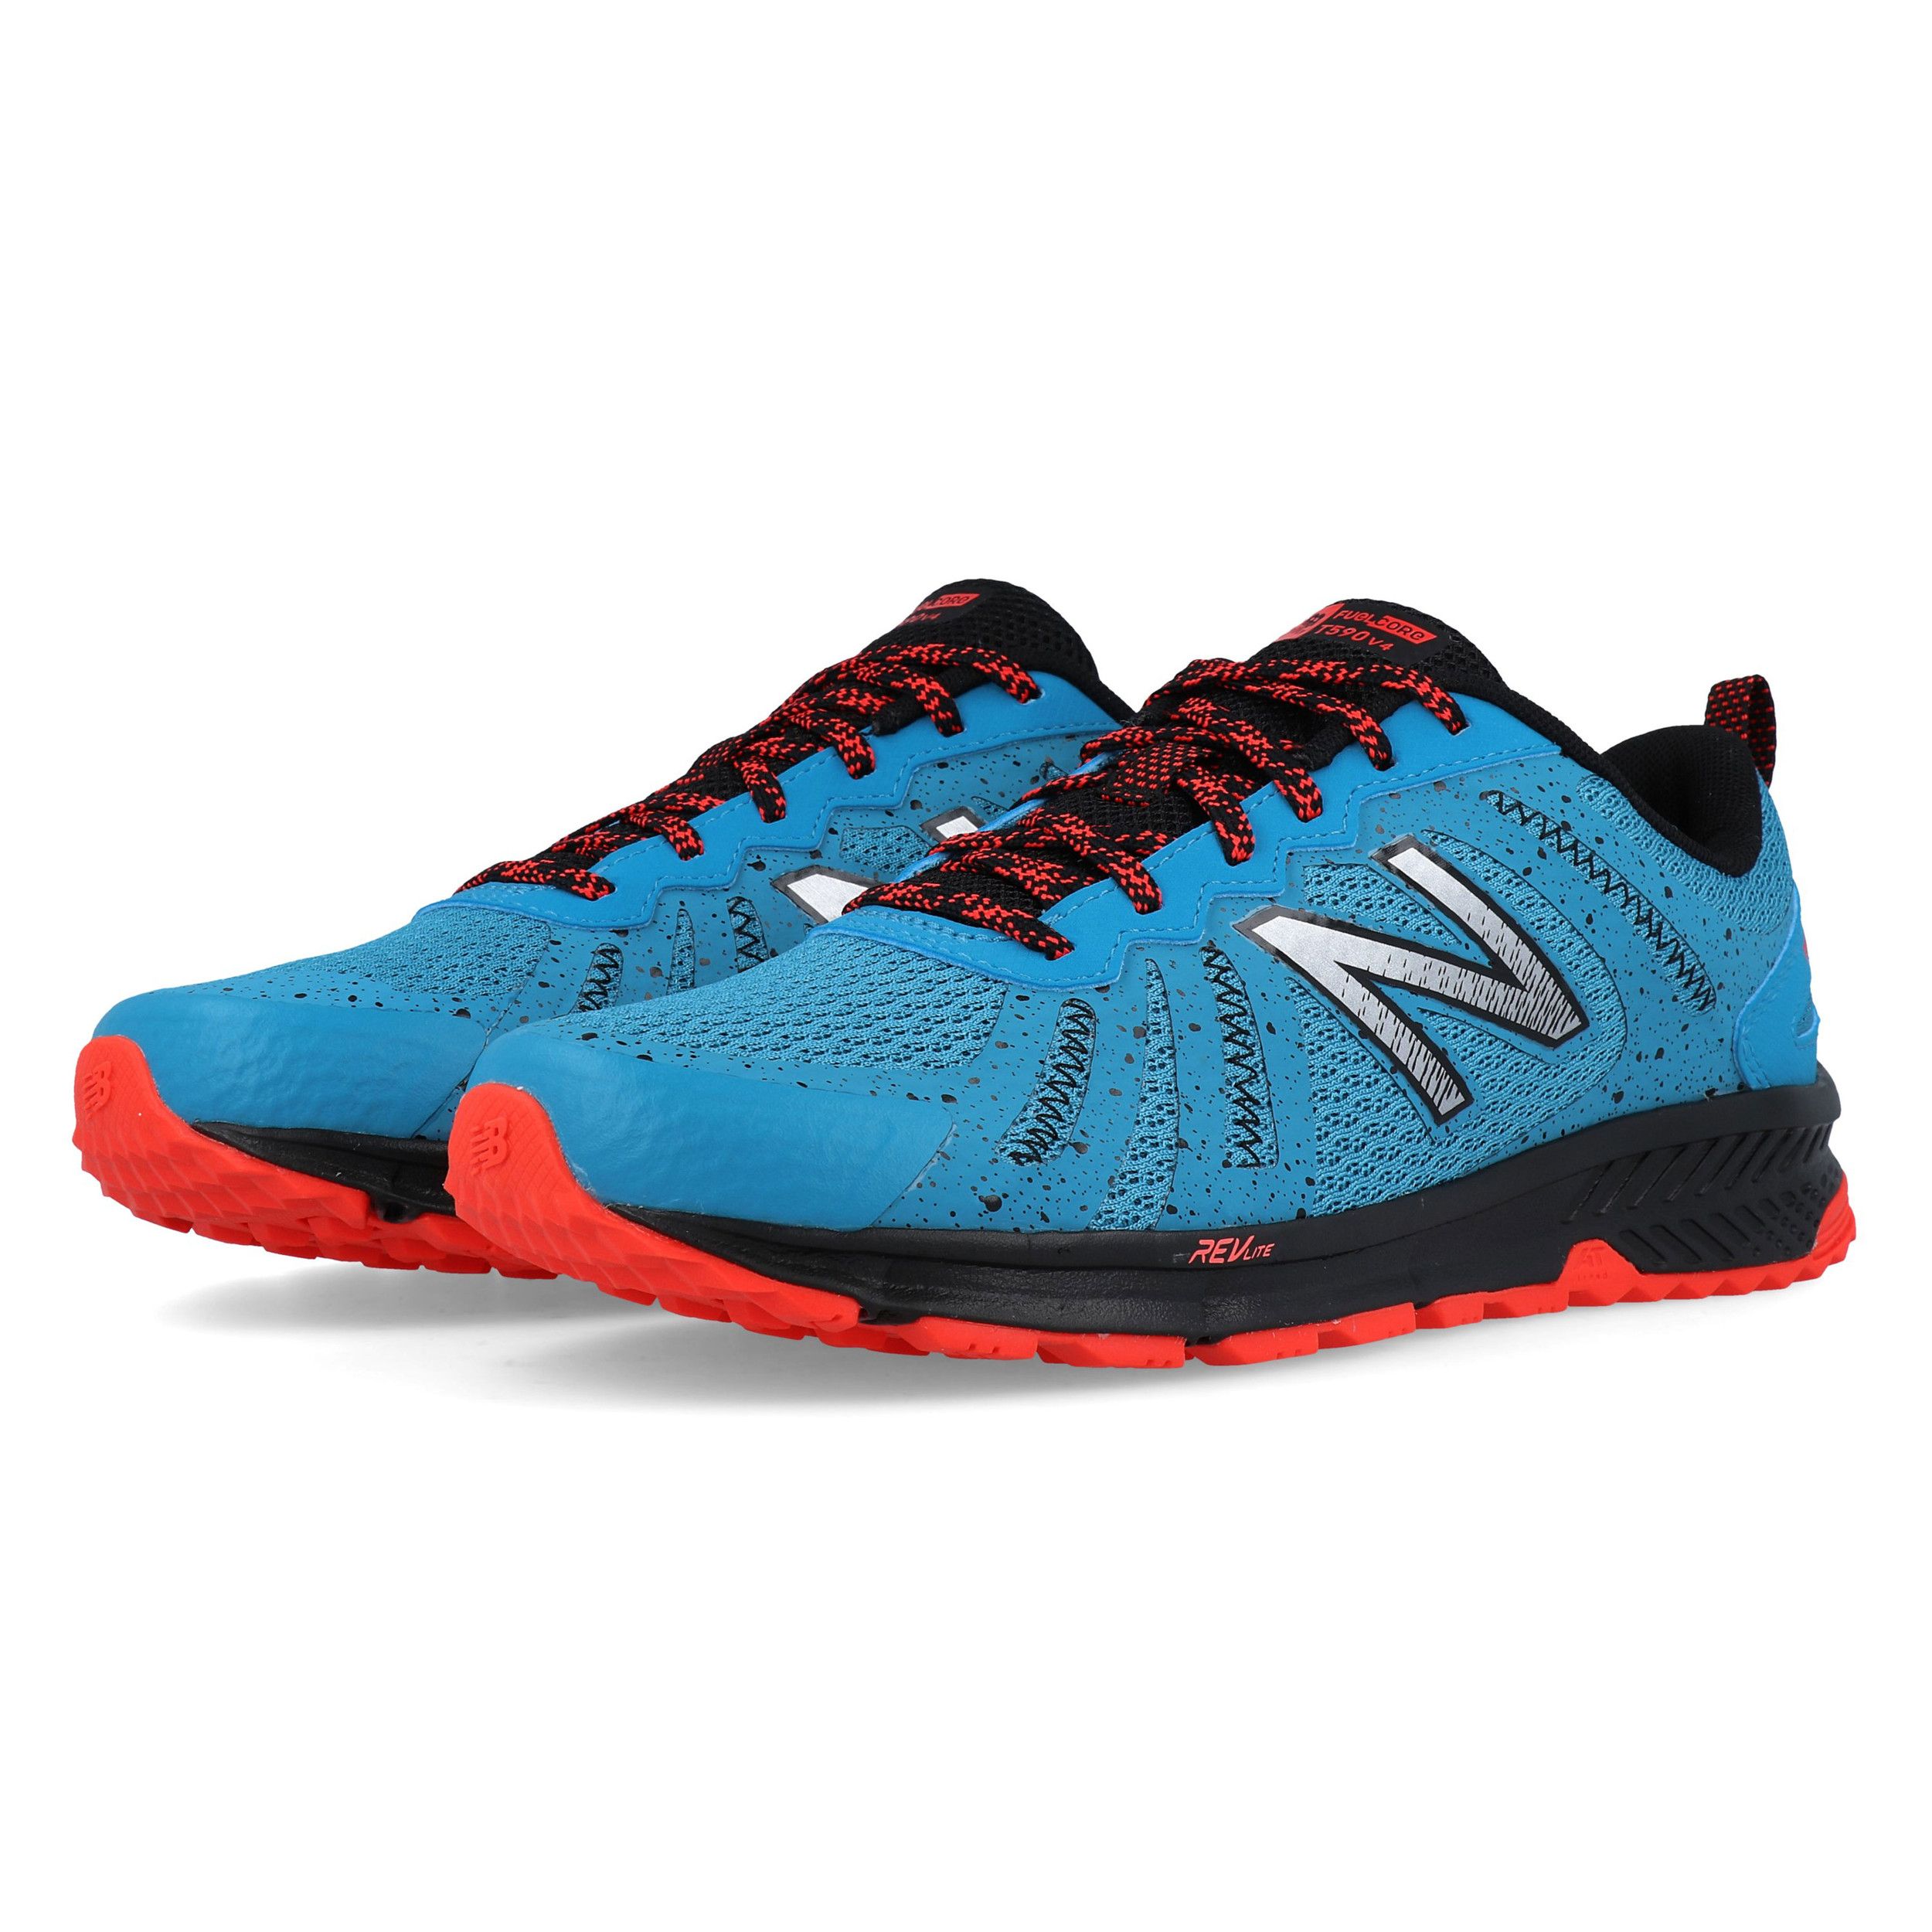 2020 uk cheap sale best online Details about New Balance Mens 590v4 Trail Running Shoes Trainers Blue  Sports Breathable